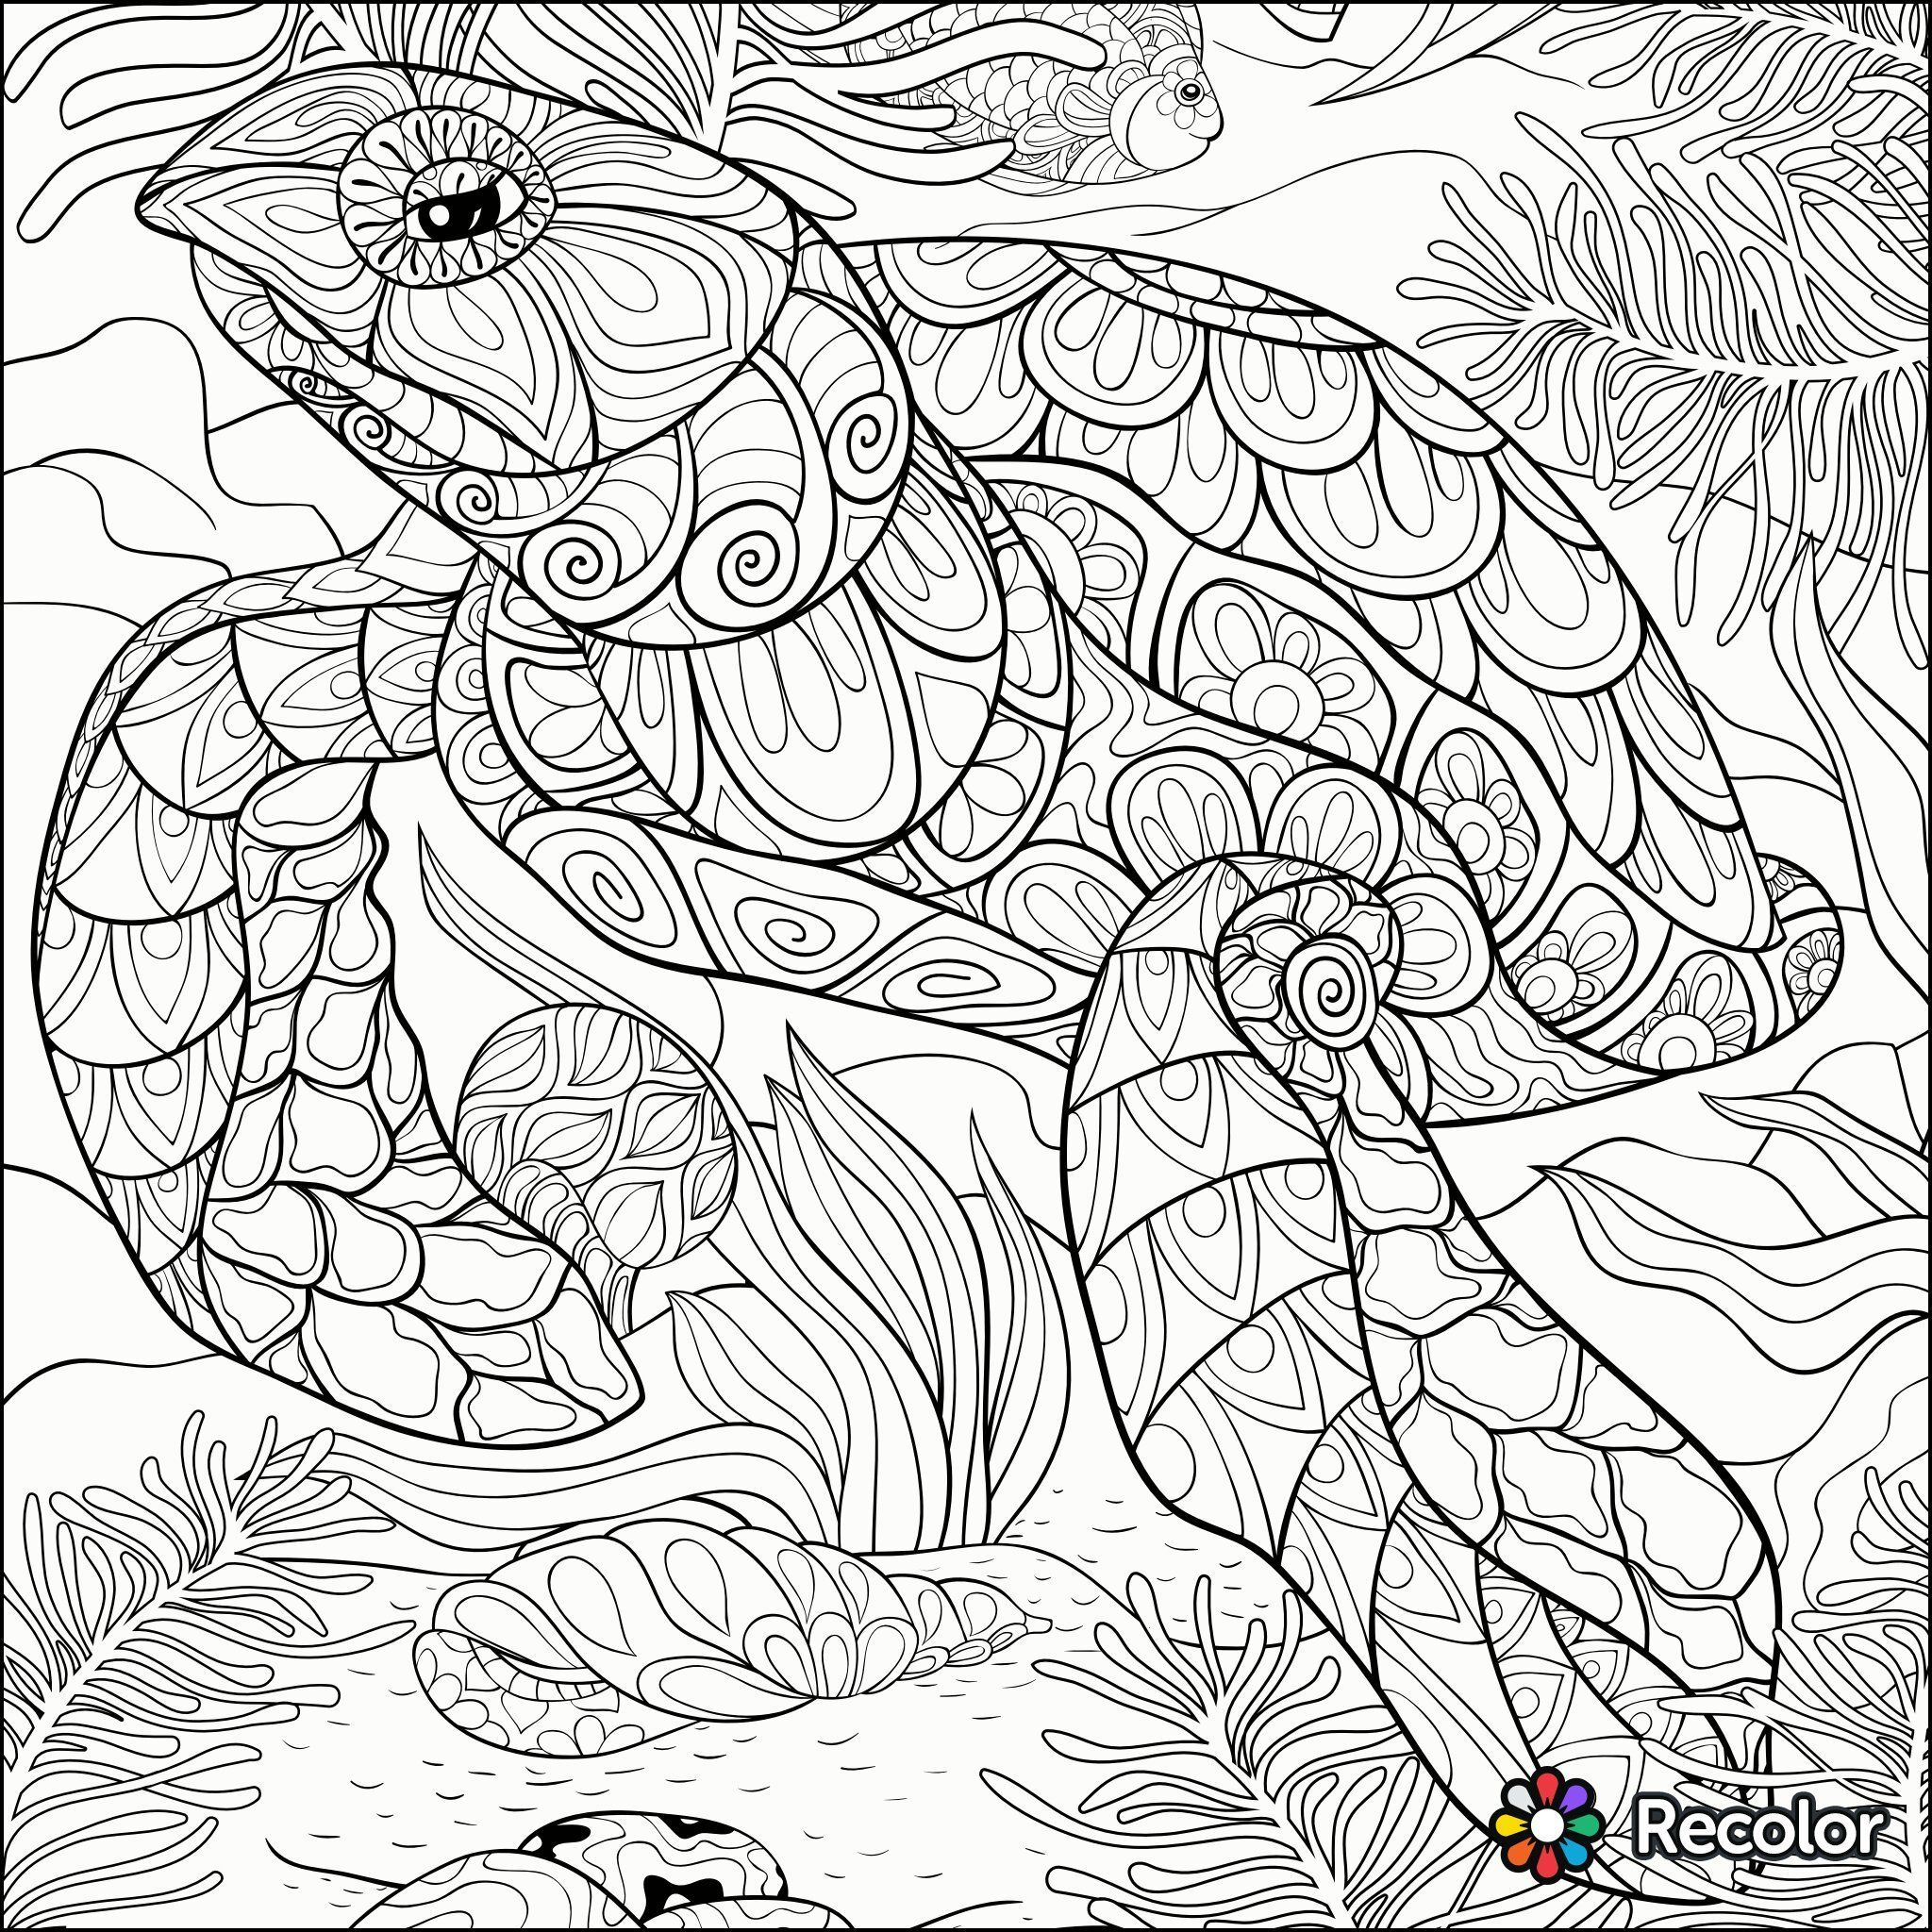 Turtle Coloring Page Recolor App Turtle Coloring Pages Animal Coloring Pages Coloring Books In 2021 Turtle Coloring Pages Animal Coloring Pages Coloring Books